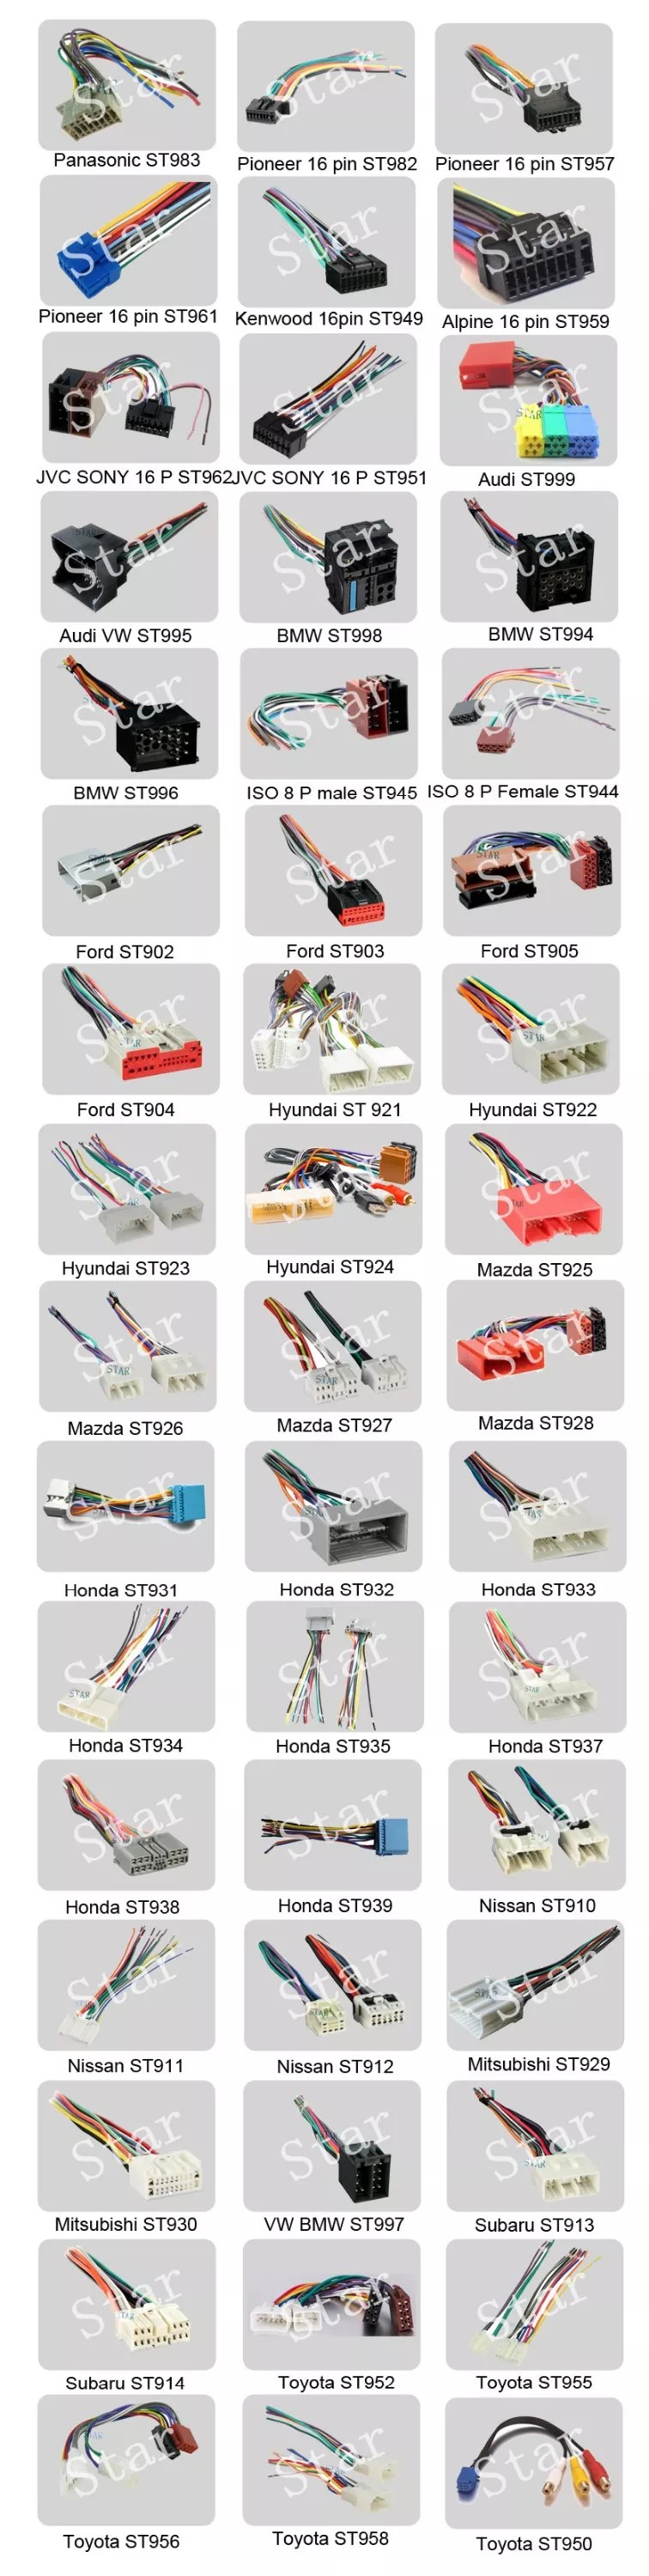 medium resolution of 16 pin pioneer car radio stereo iso wiring harness manufacturer